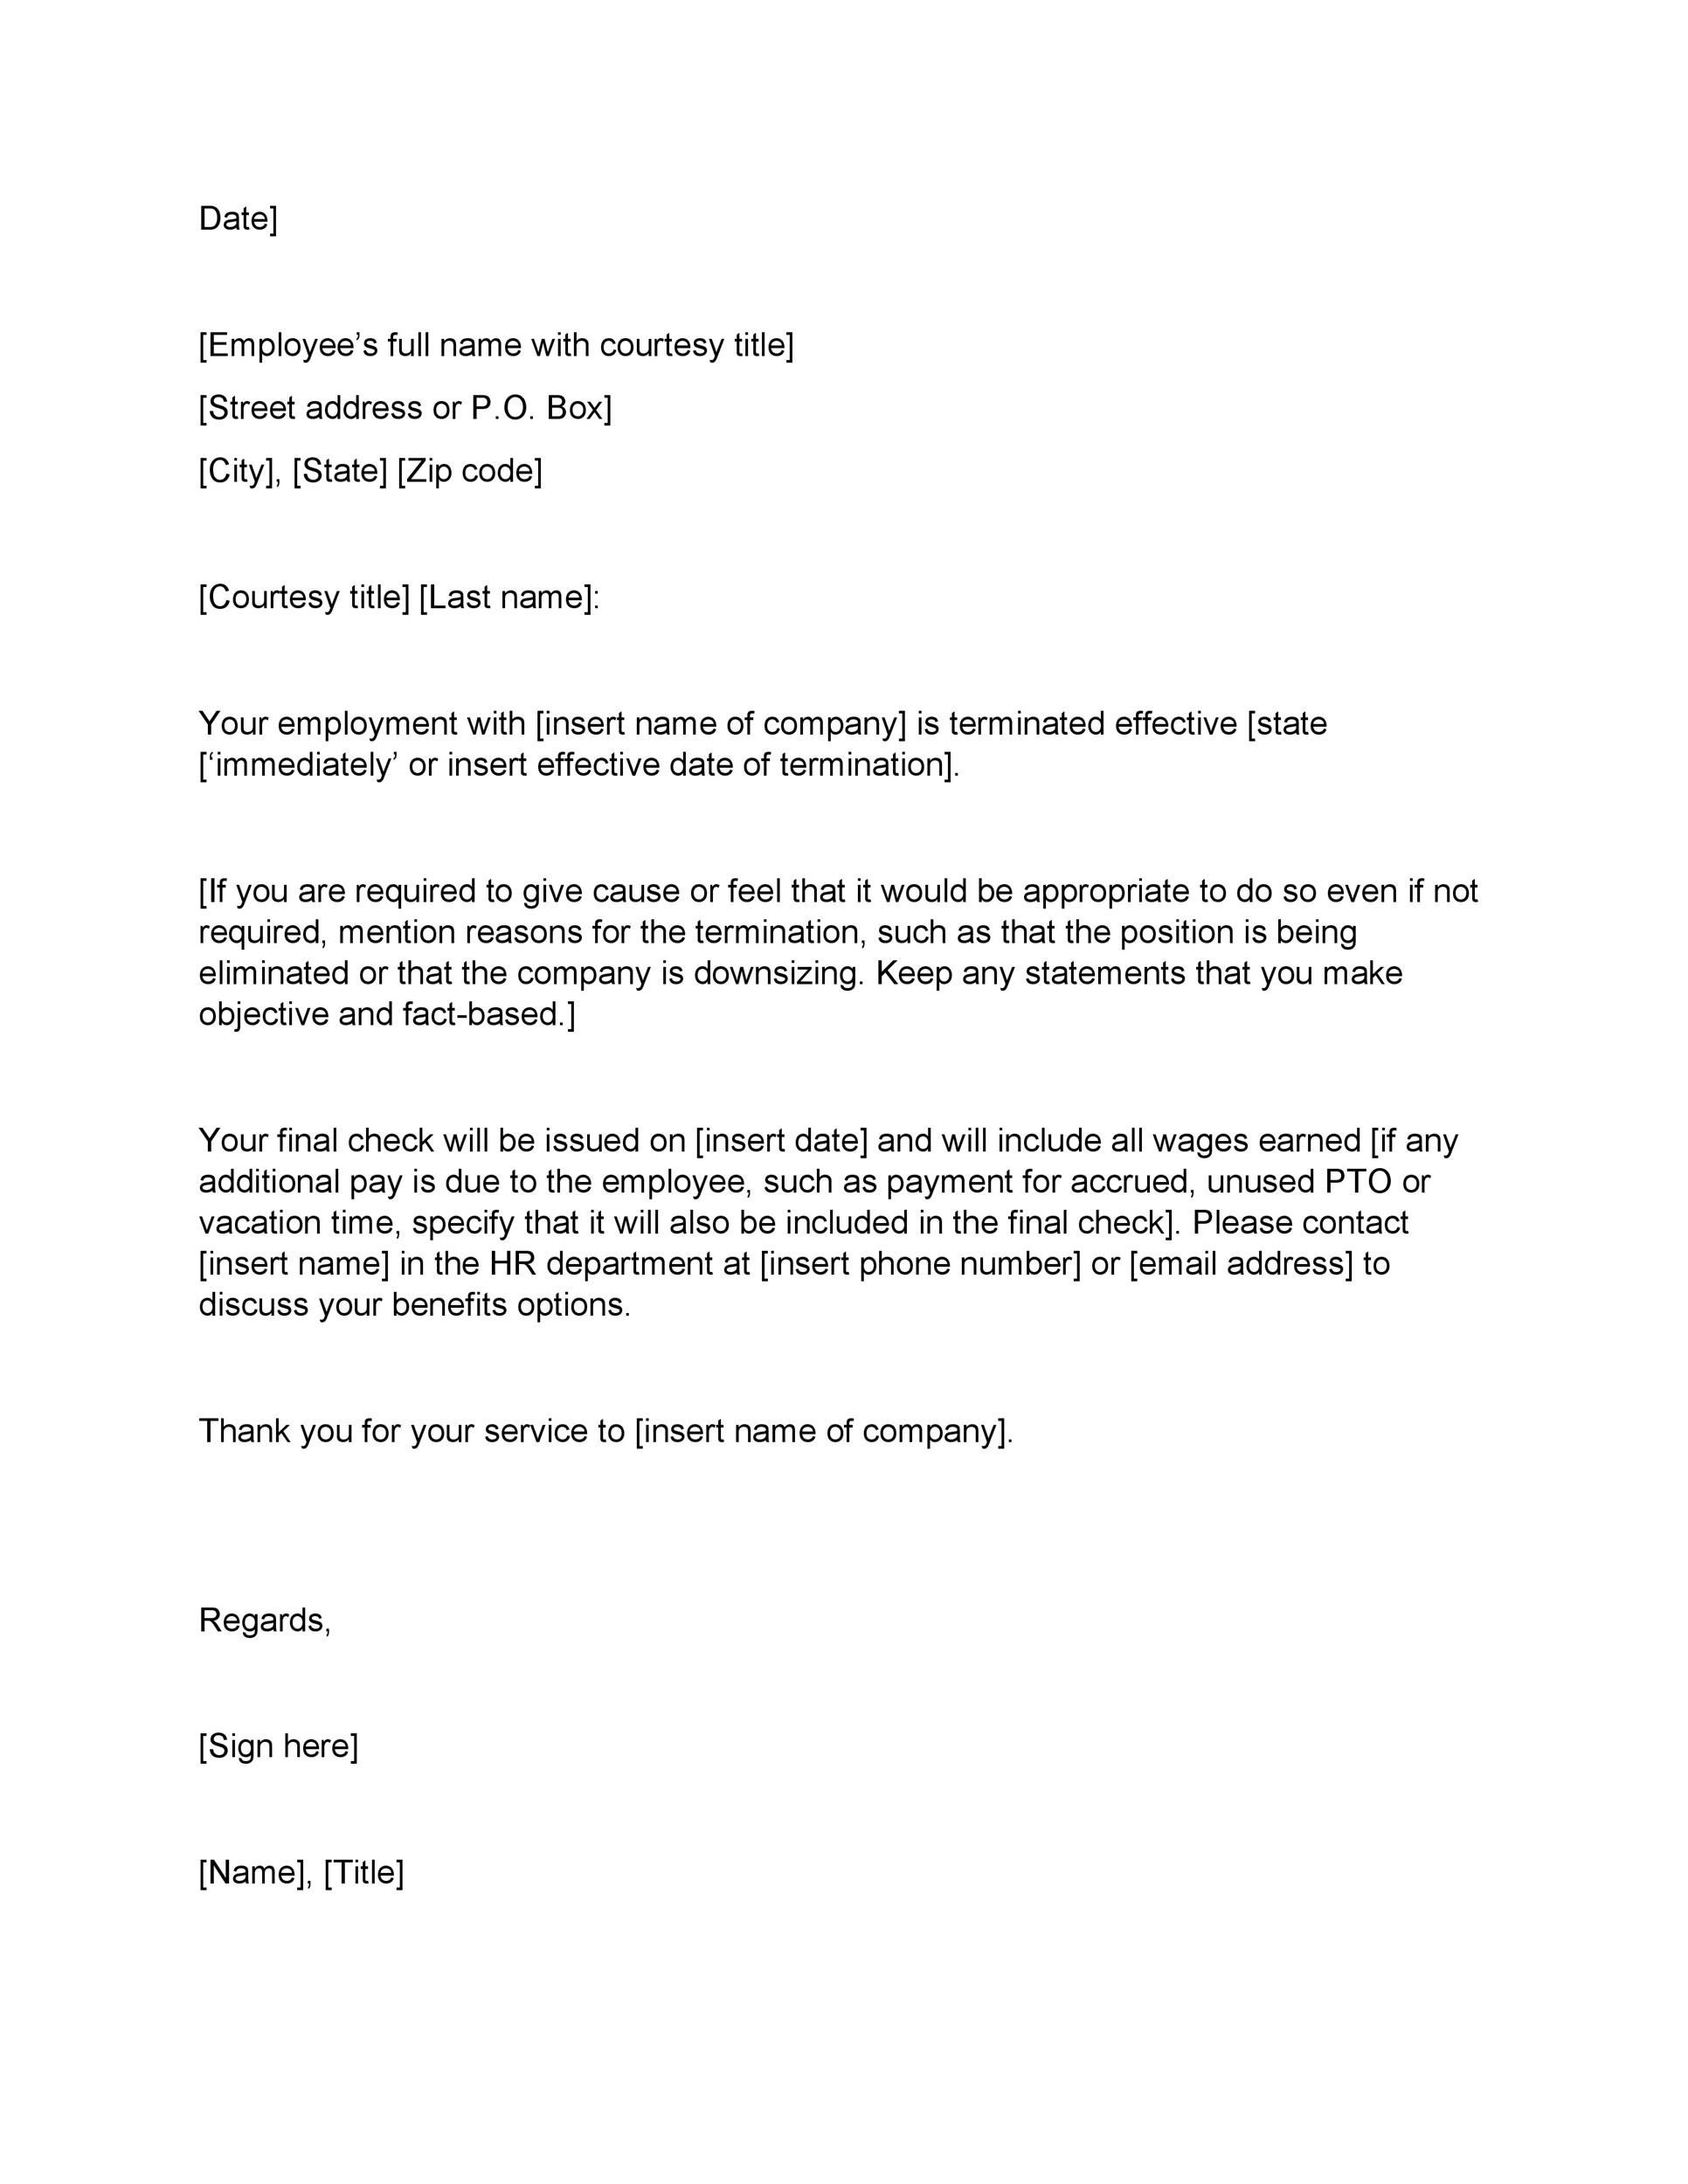 Termination Letter To Employee Personal Reference Letter Professional Reference Letter Letter Templates Free Termination of employment letter template